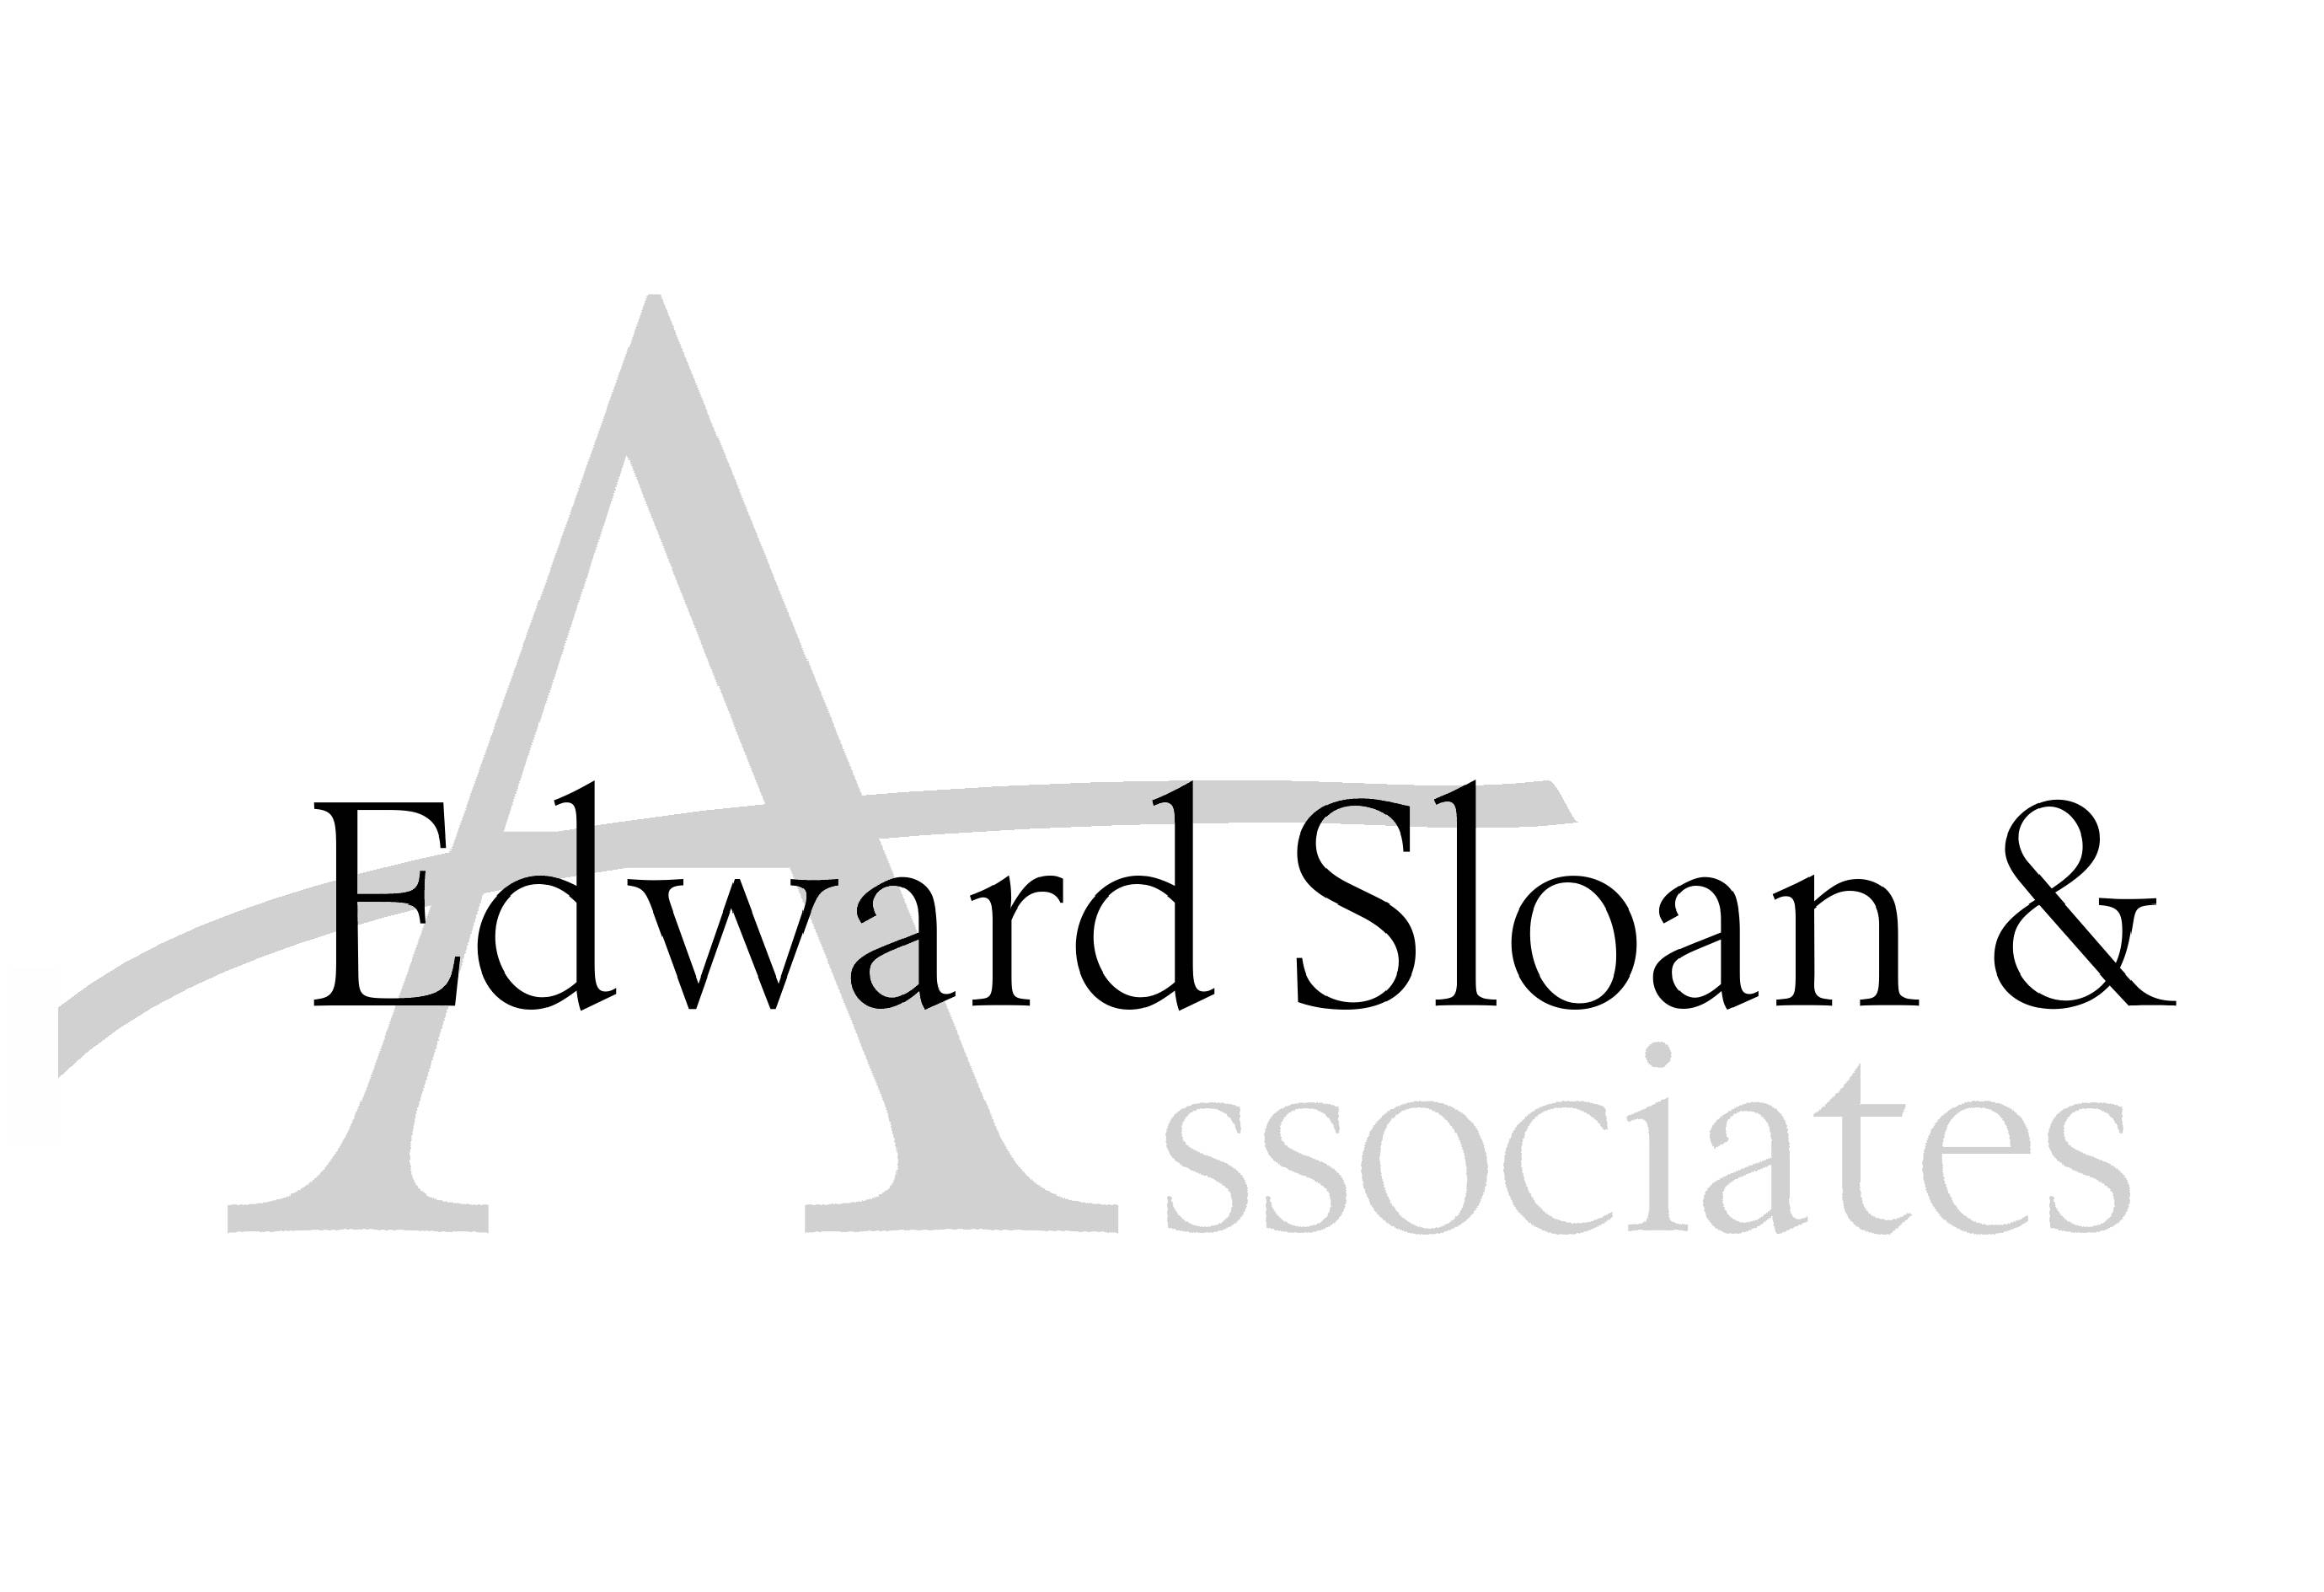 Link to Edward Sloan & Associates